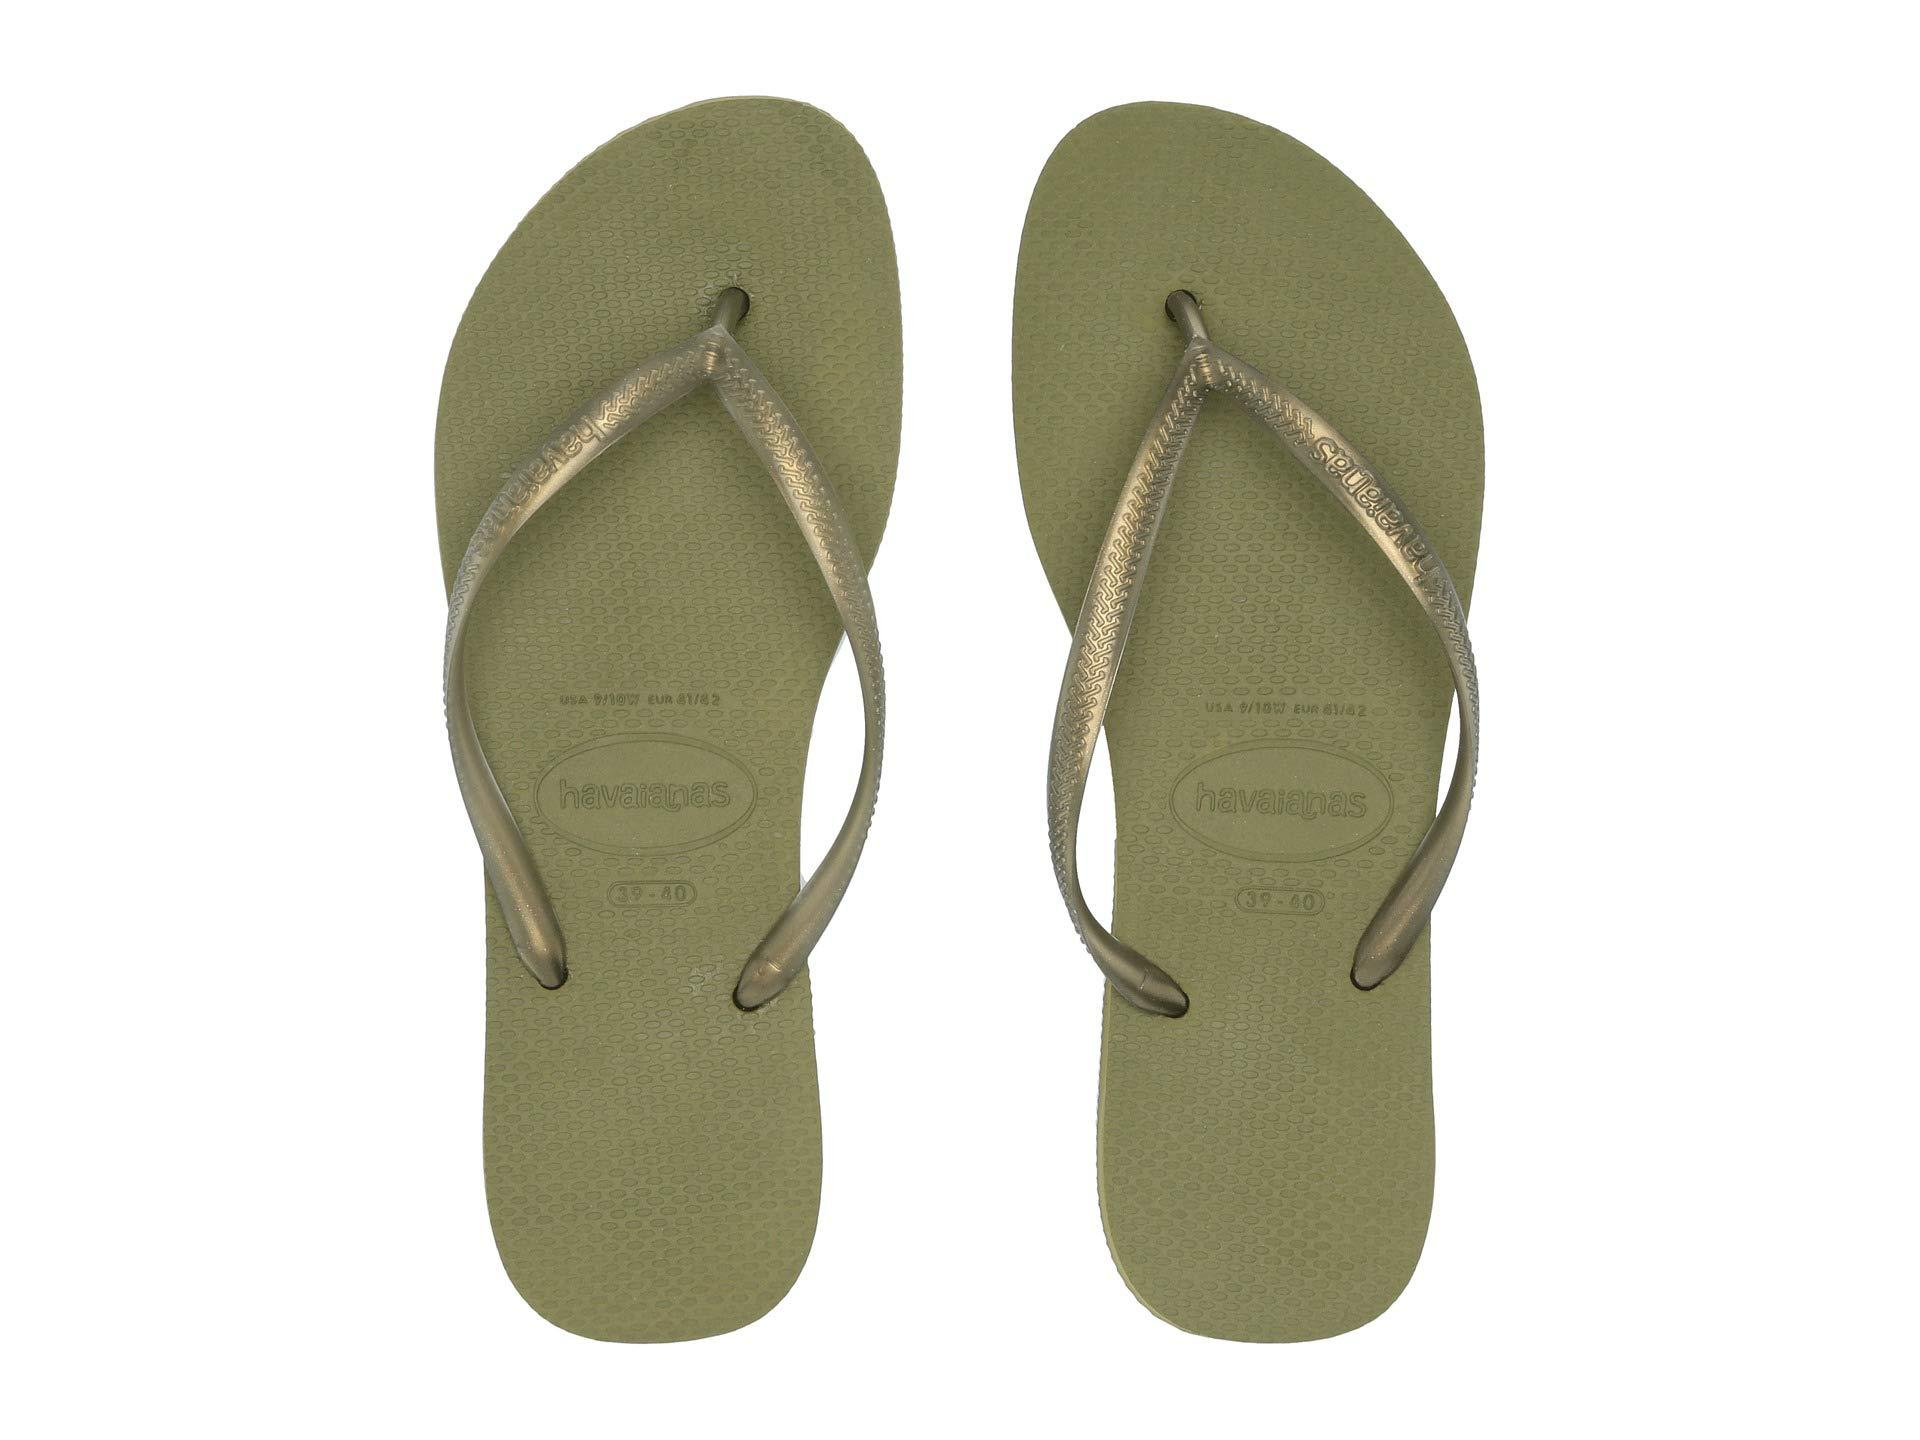 278324b635d1e Lyst - Havaianas Slim Flip Flops (blue) Women s Sandals in Green